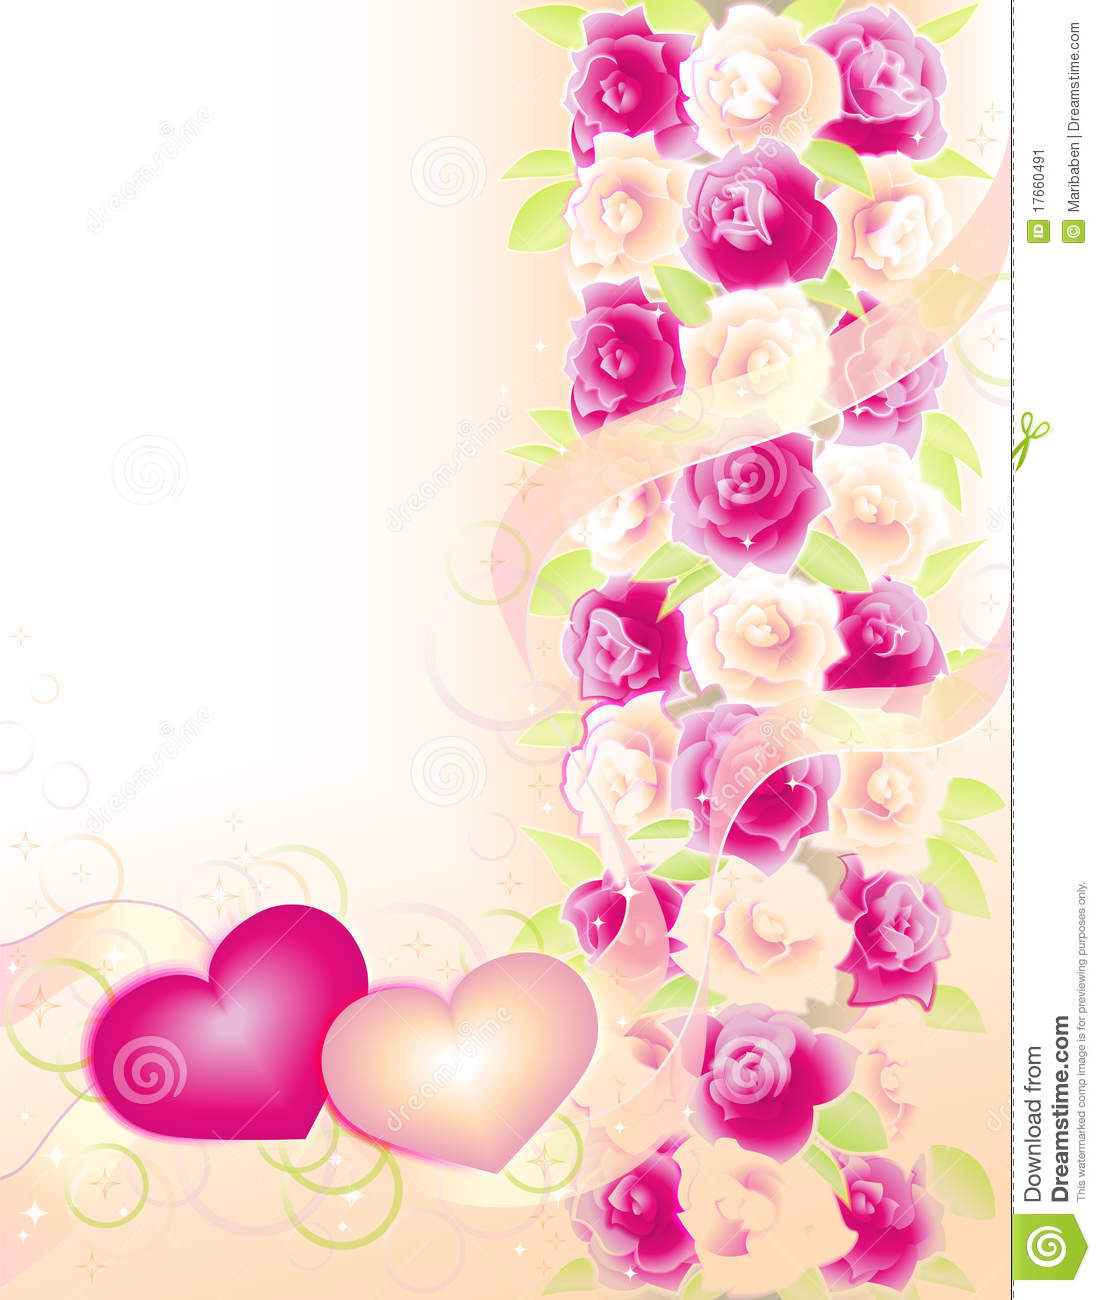 More similar stock images of ` Valentines background with roses and ...